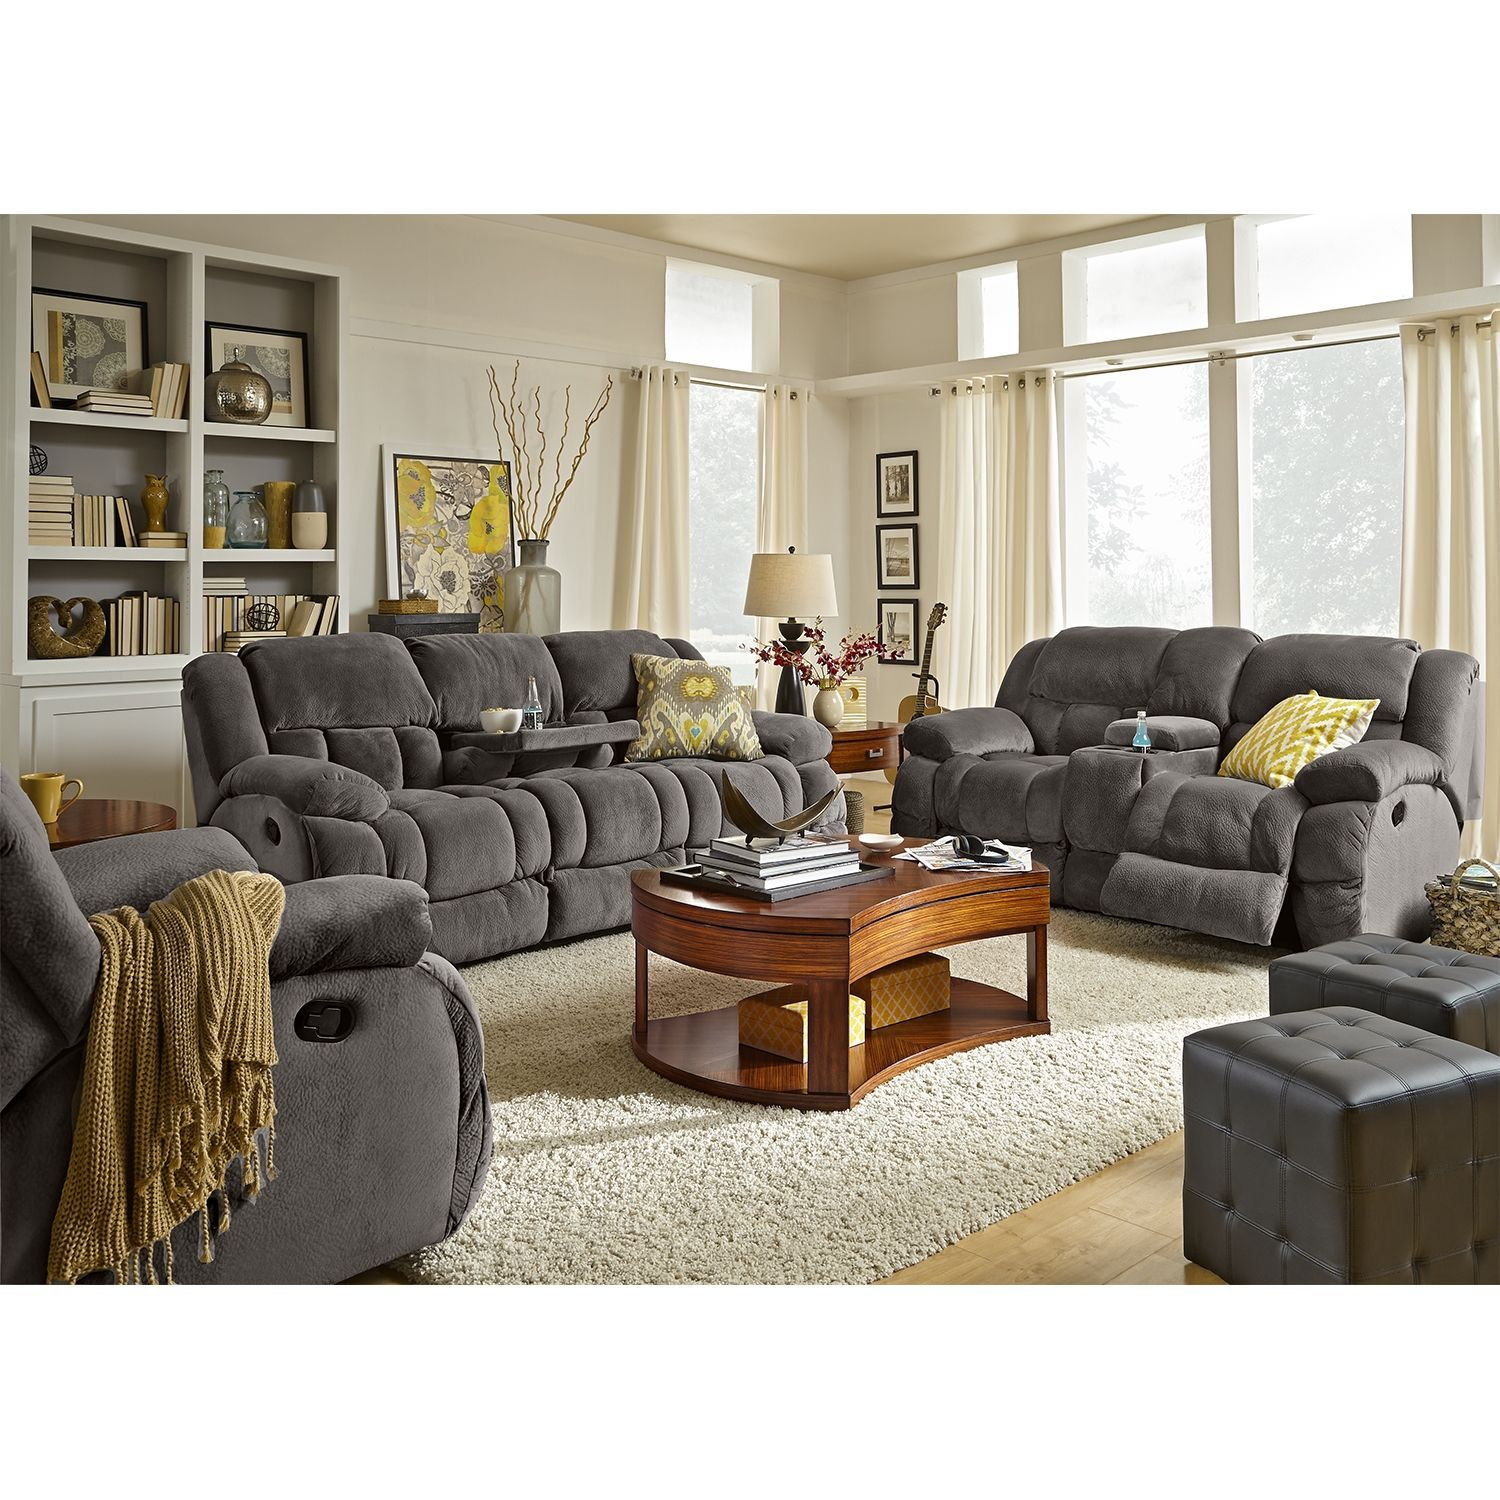 City Furniture Living Room Set Layout For Small Narrow Park 2 Pc Reclining W Glider Recliner Value